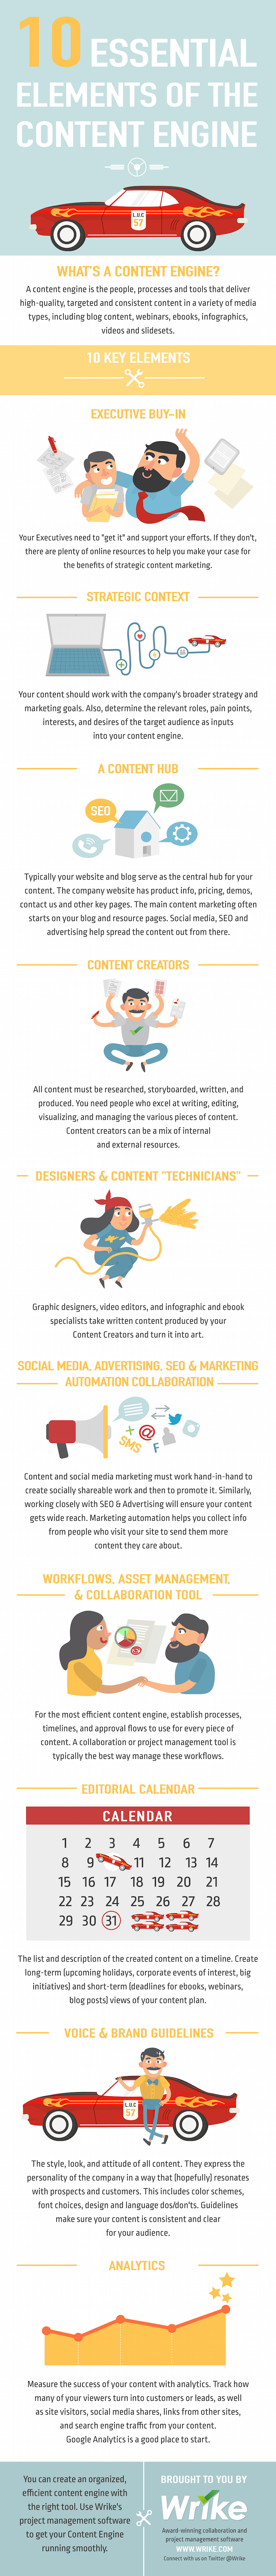 """10 Elements of a Successful Content Marketing """"Engine"""""""